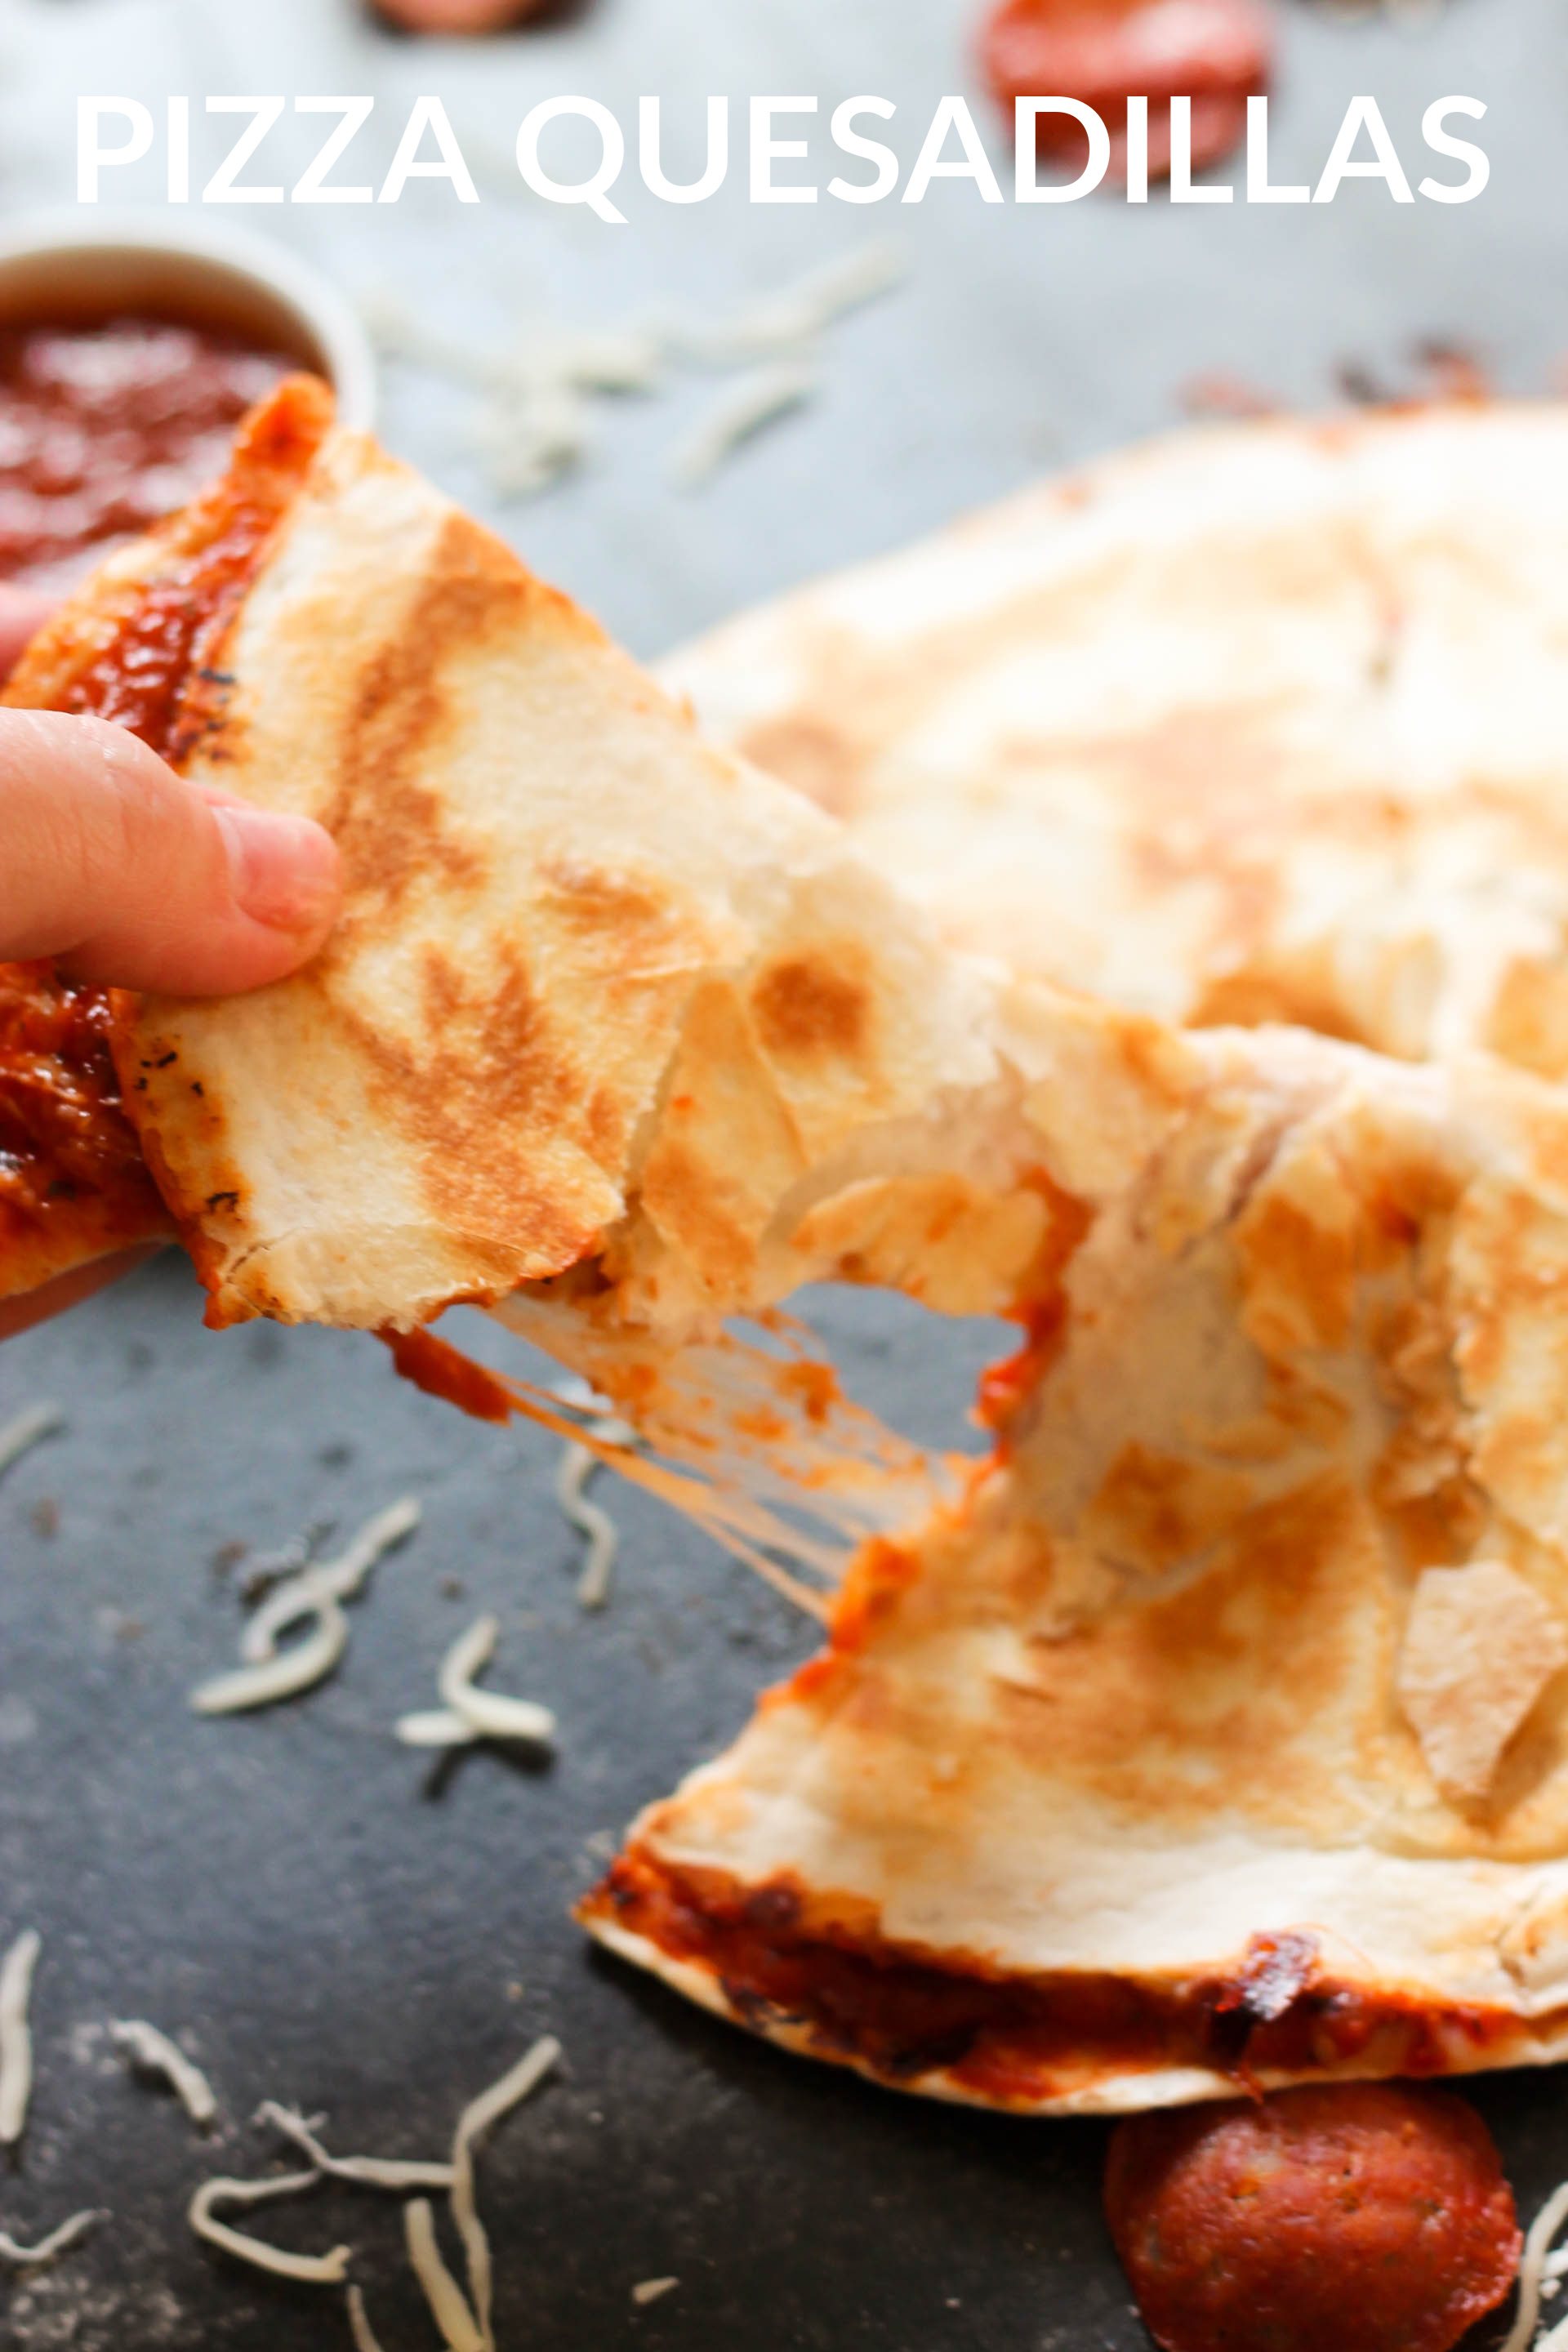 easy pizza quesadillas that have been cooked cooked, with a hand pulling out a triangle slice to eat